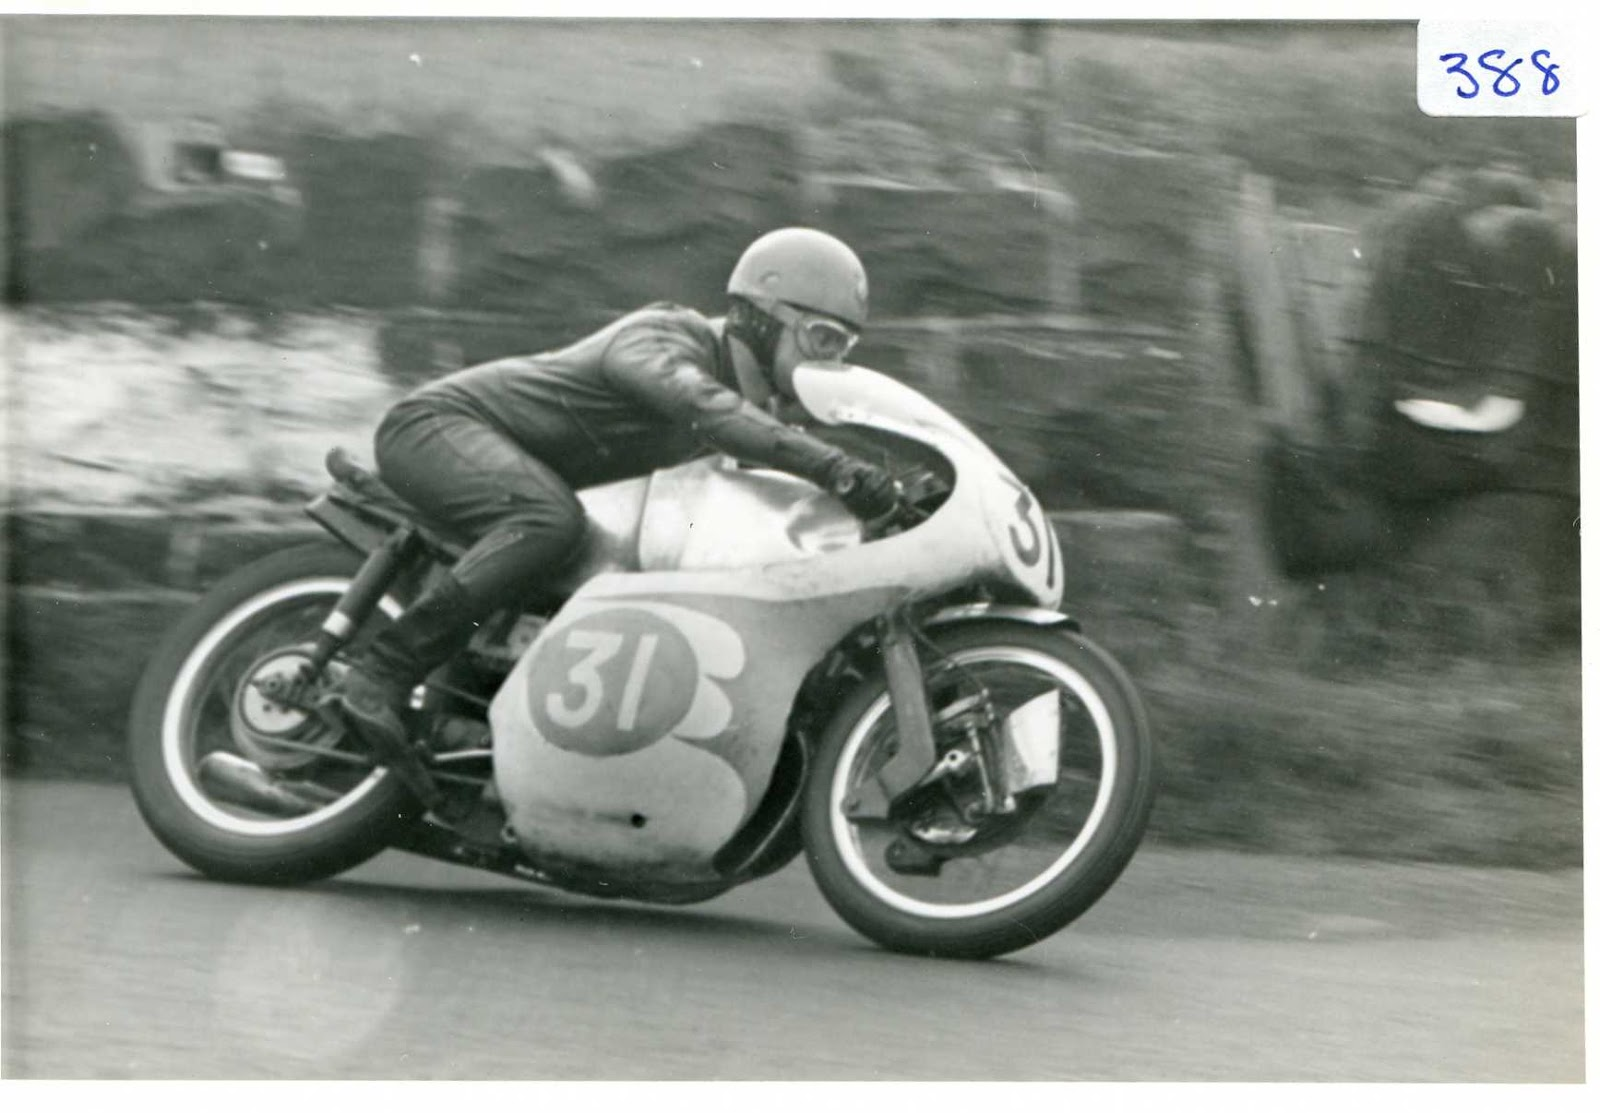 union GFTP: old motorcycle racing photos